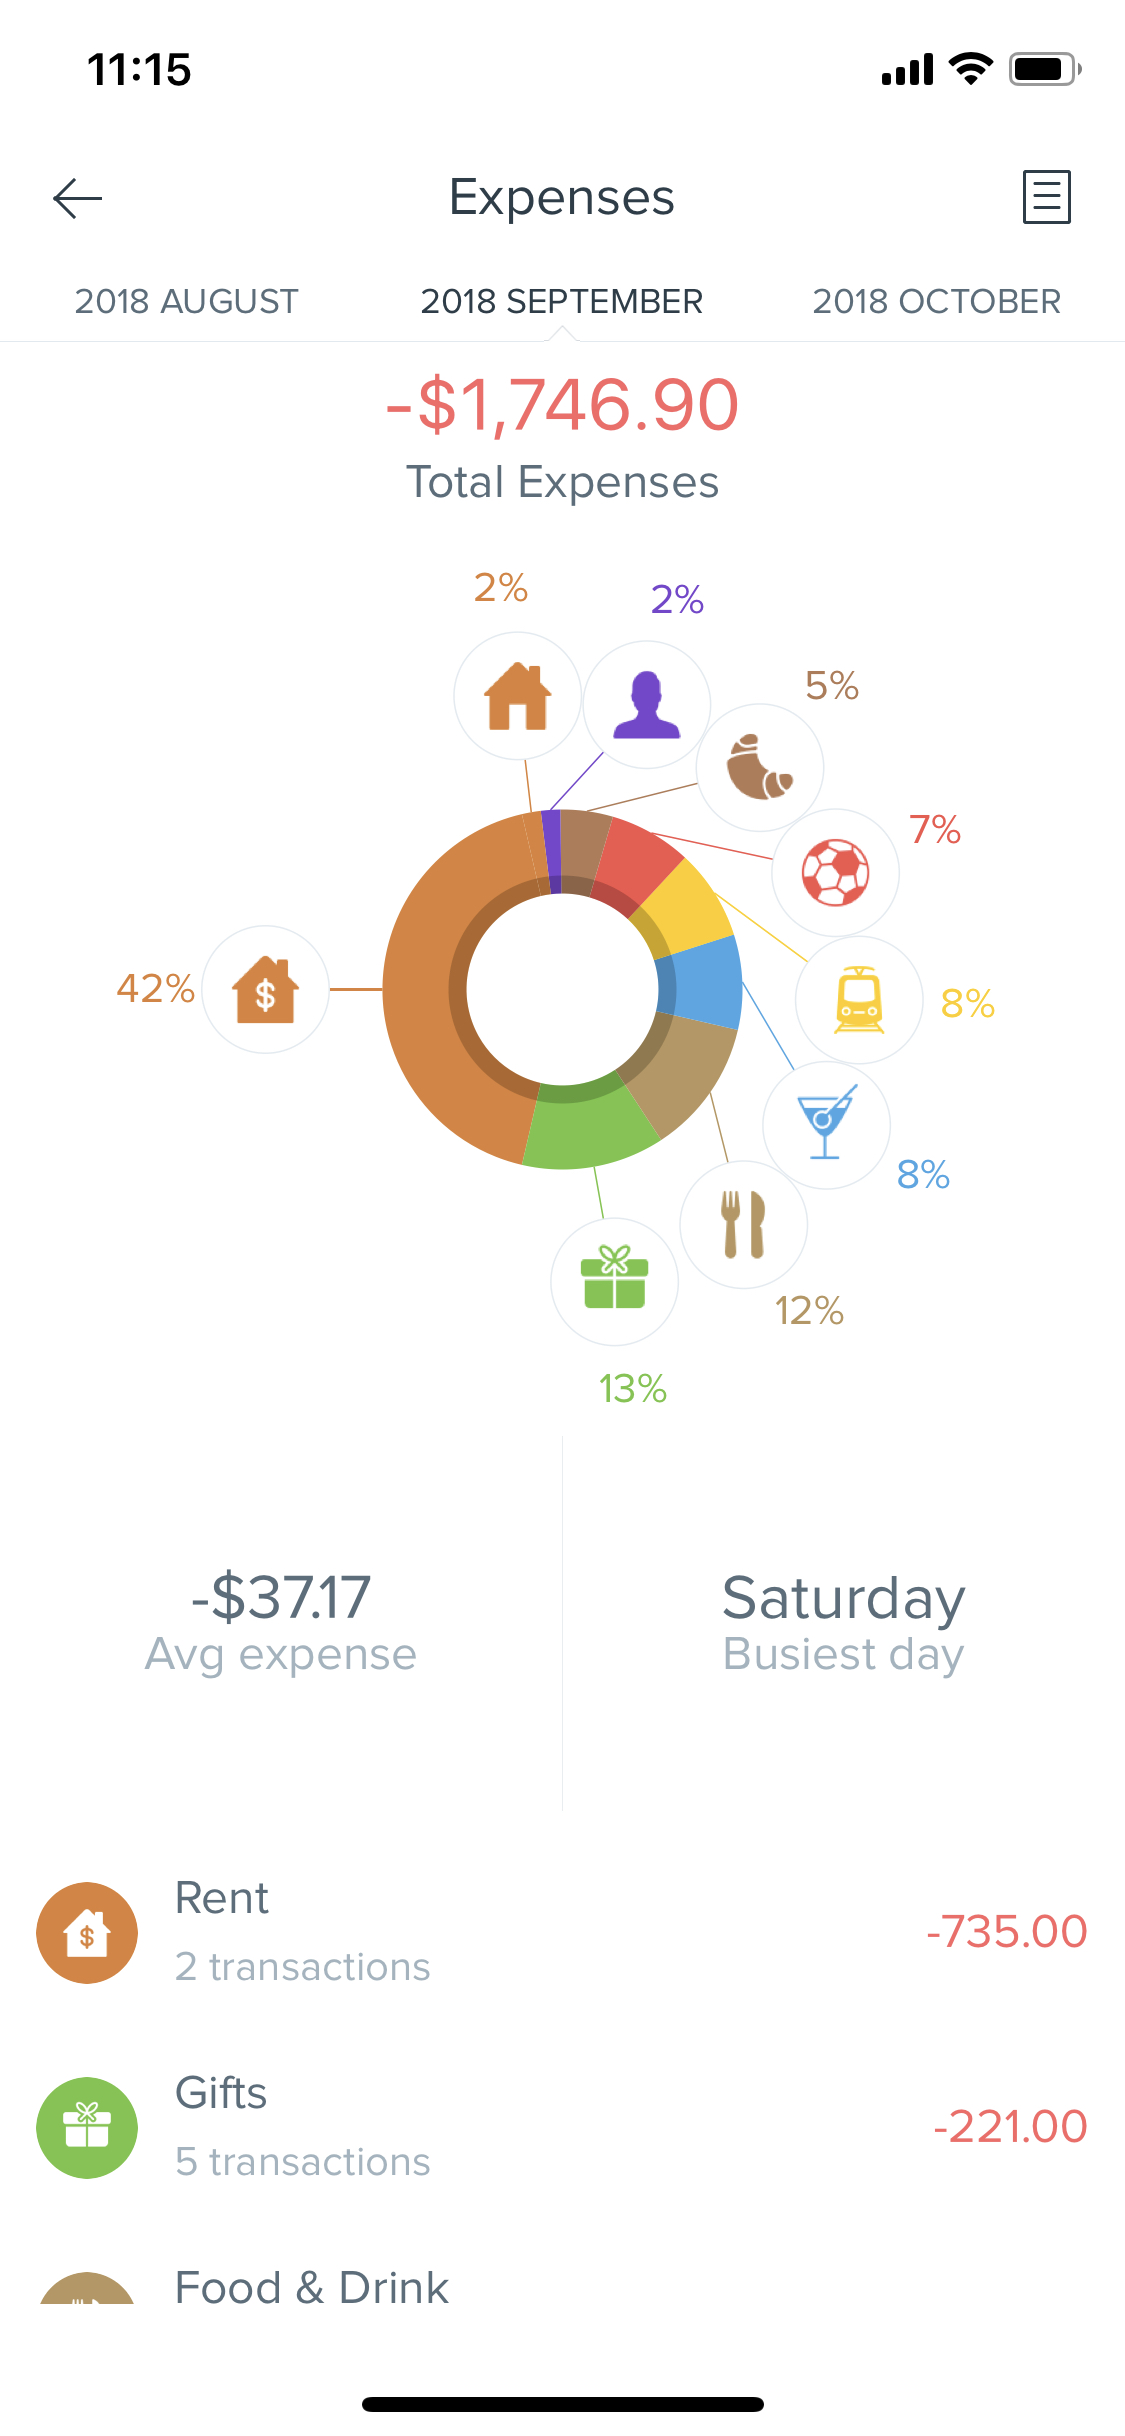 Expenses - Sep 2018 Monthly Review